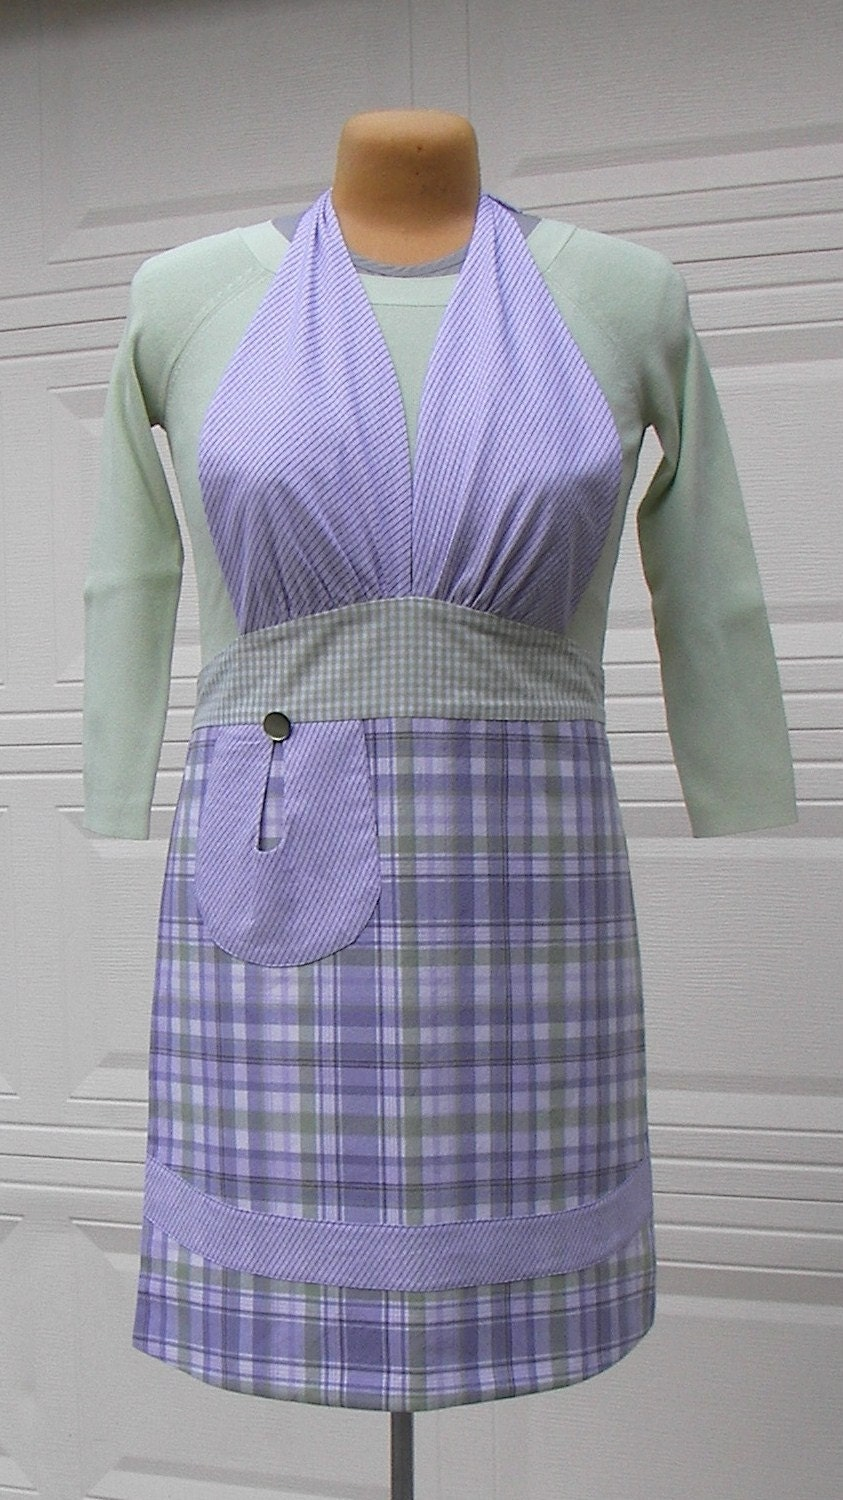 Apron - Full Apron - Lavender, Green, and White Plaid - OOAK - fancyfigleaf